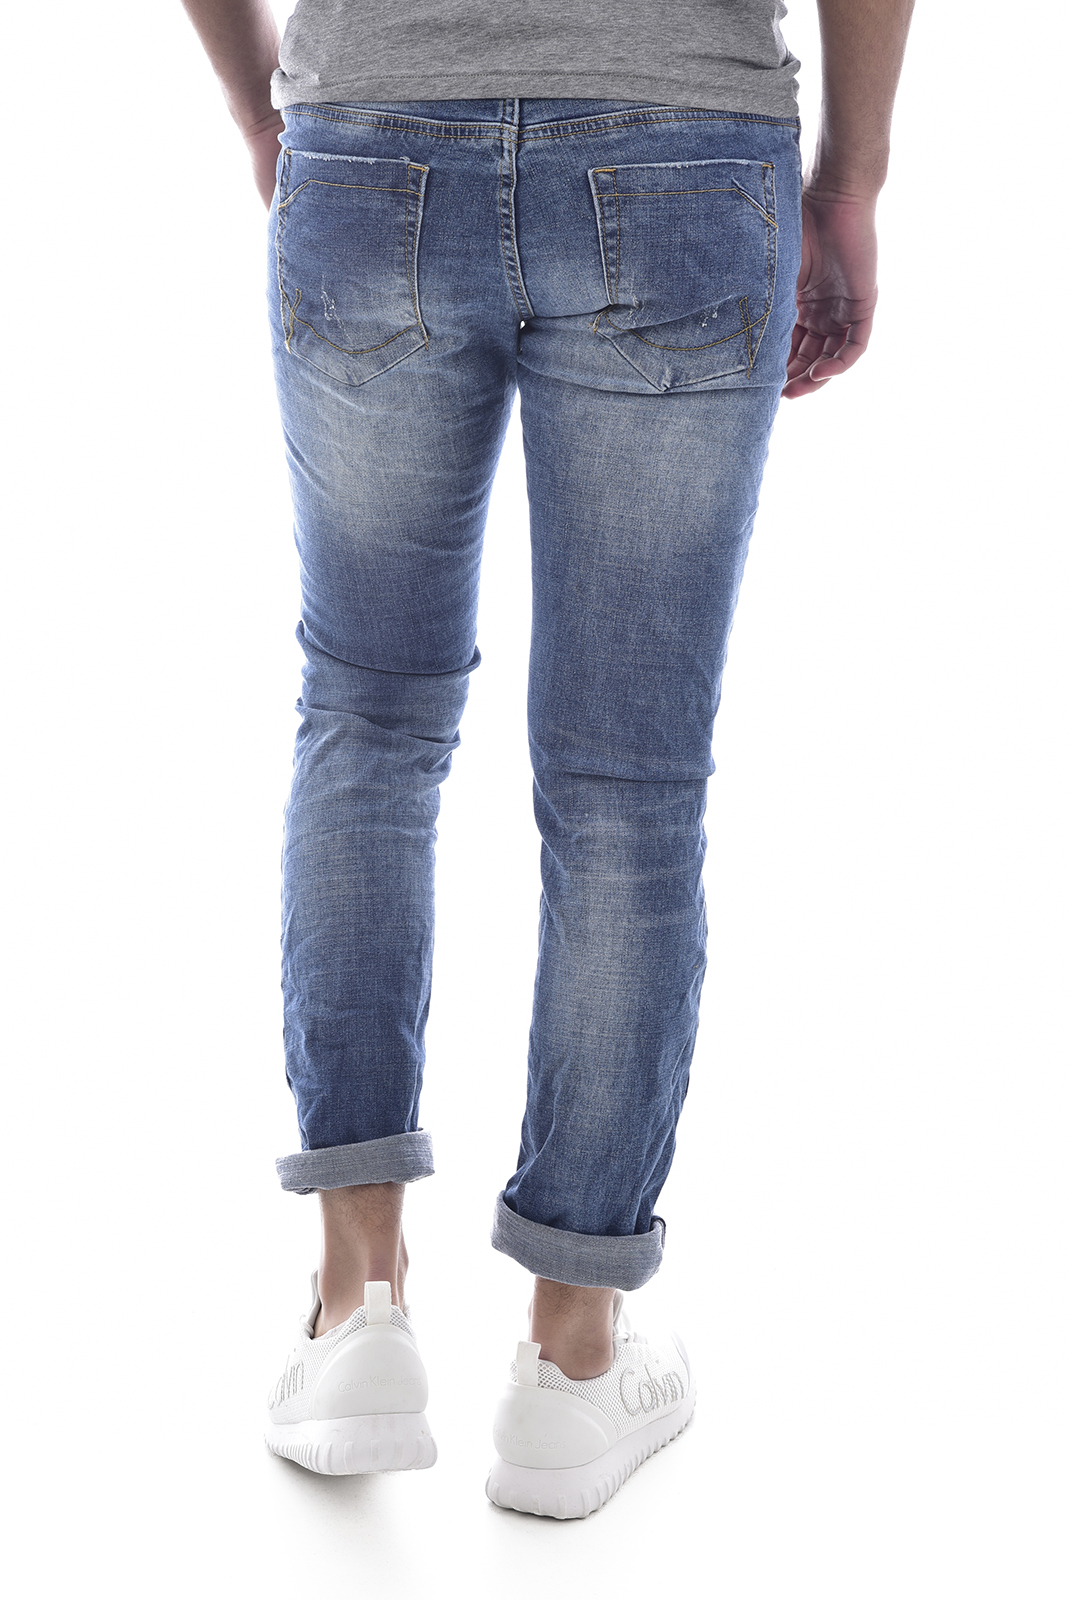 Leo Gutti Jean Bleu Taille Basse Slim Light Wash